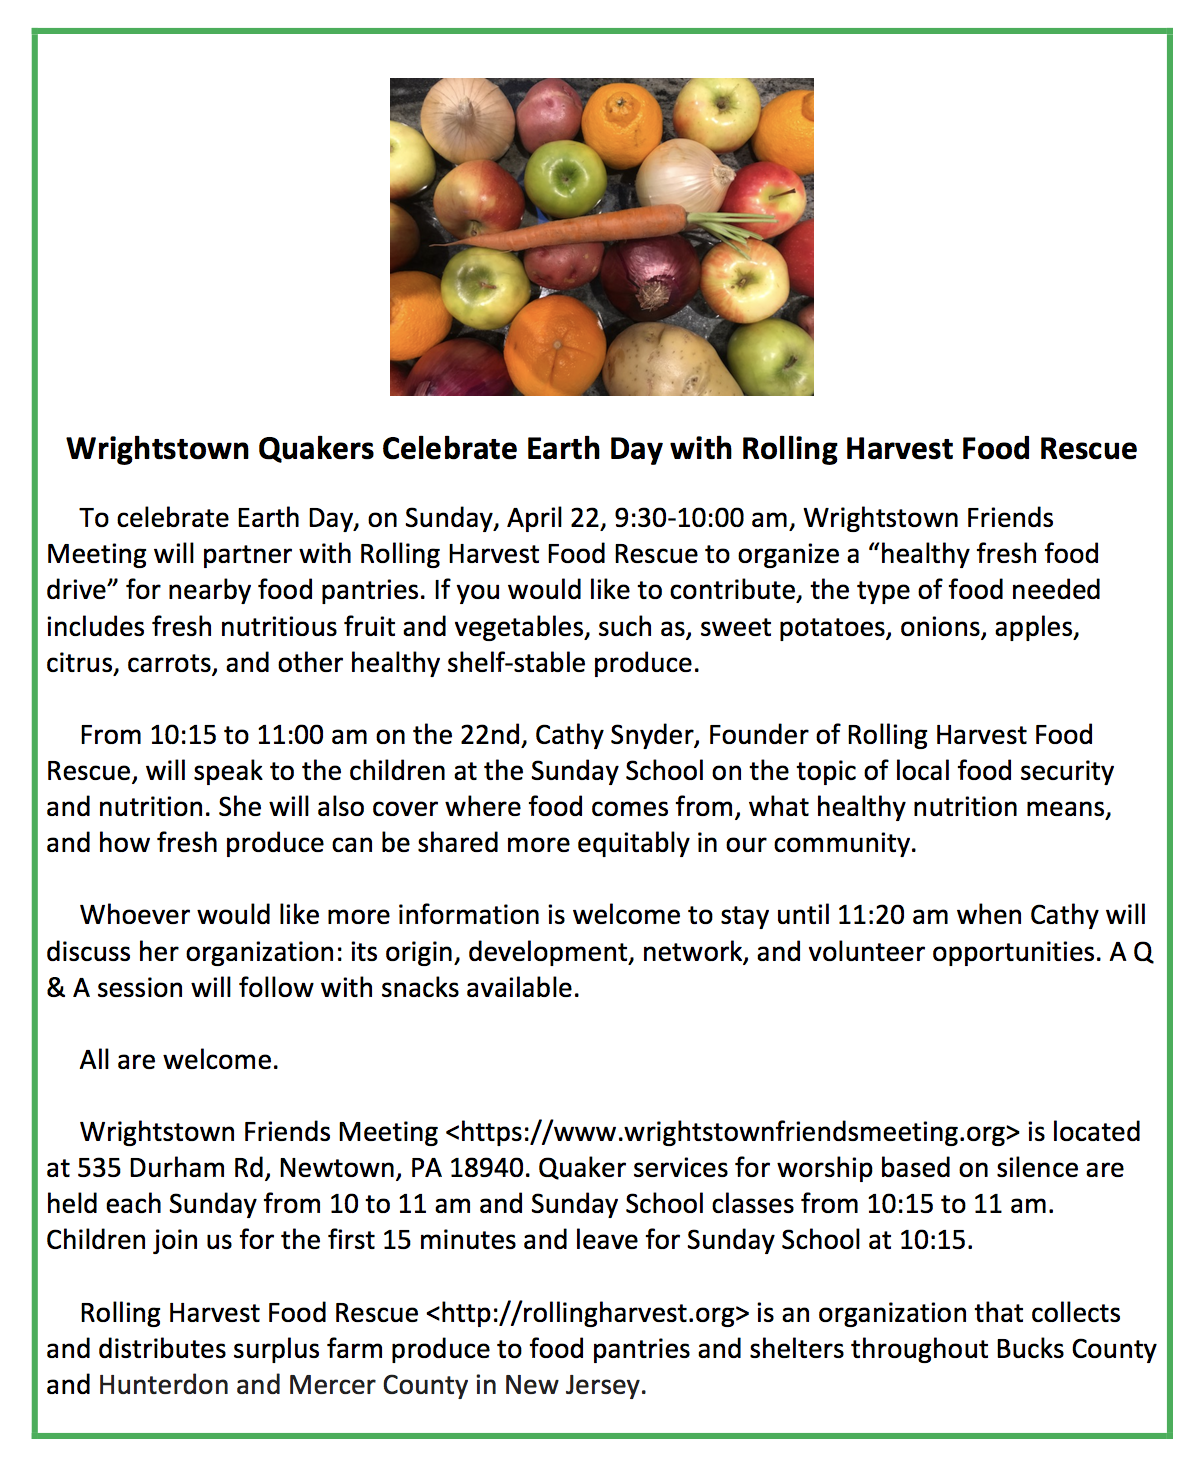 celebrate earth day snapshot.png